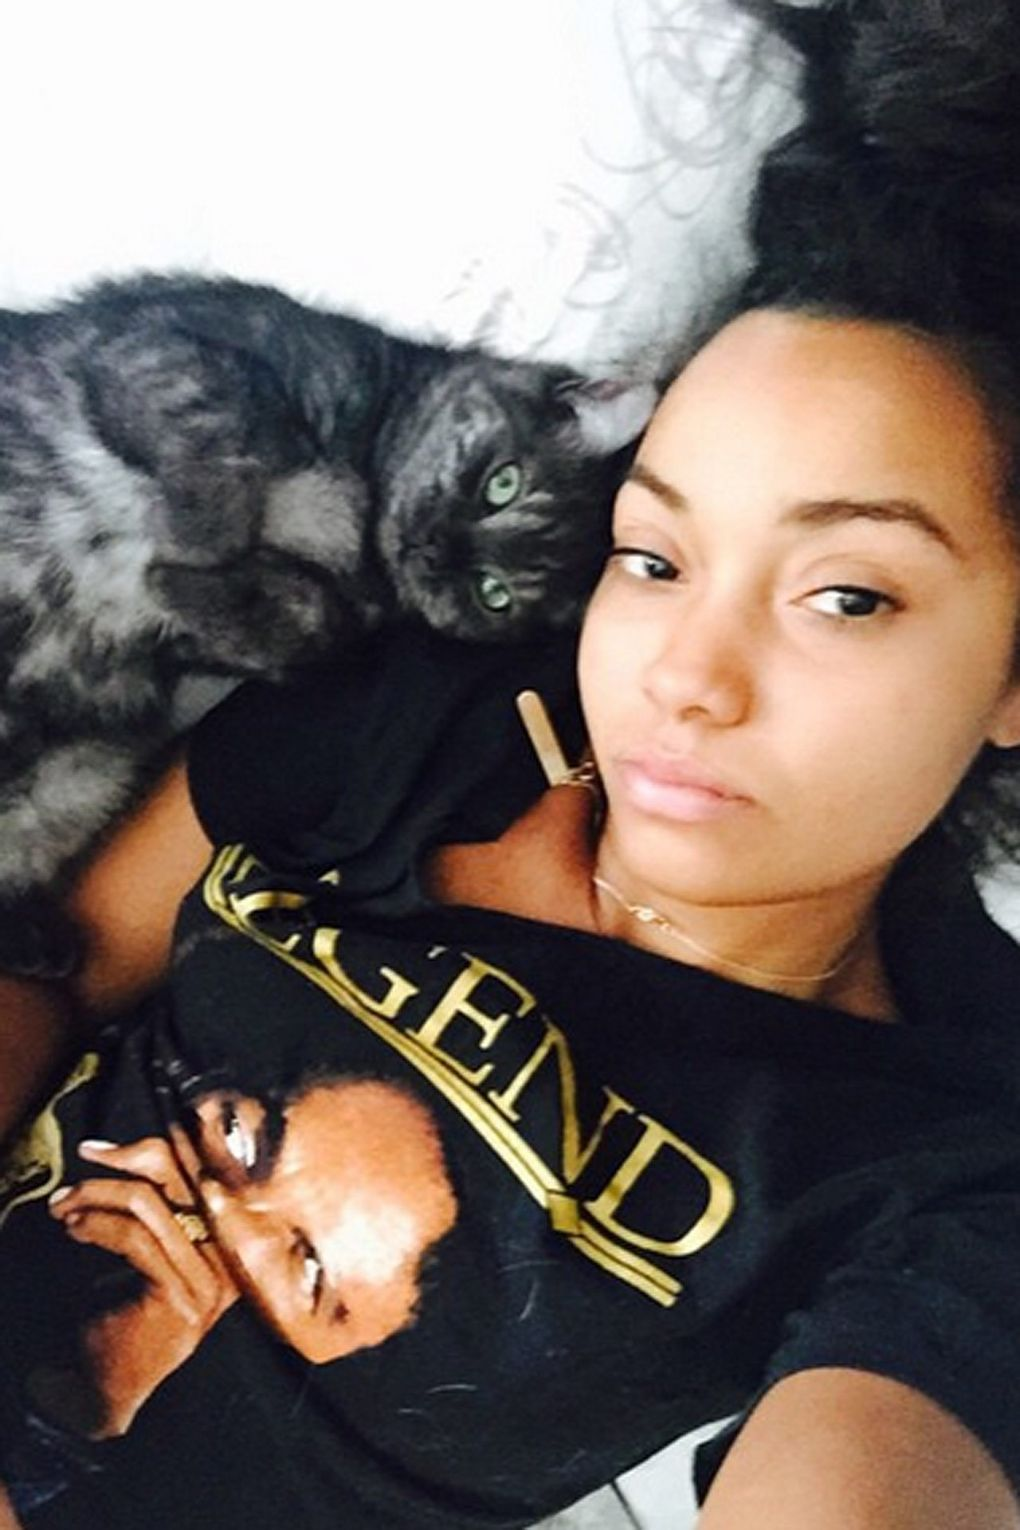 Selfie Leigh-Anne Pinnock naked (79 photos), Sexy, Is a cute, Selfie, butt 2015